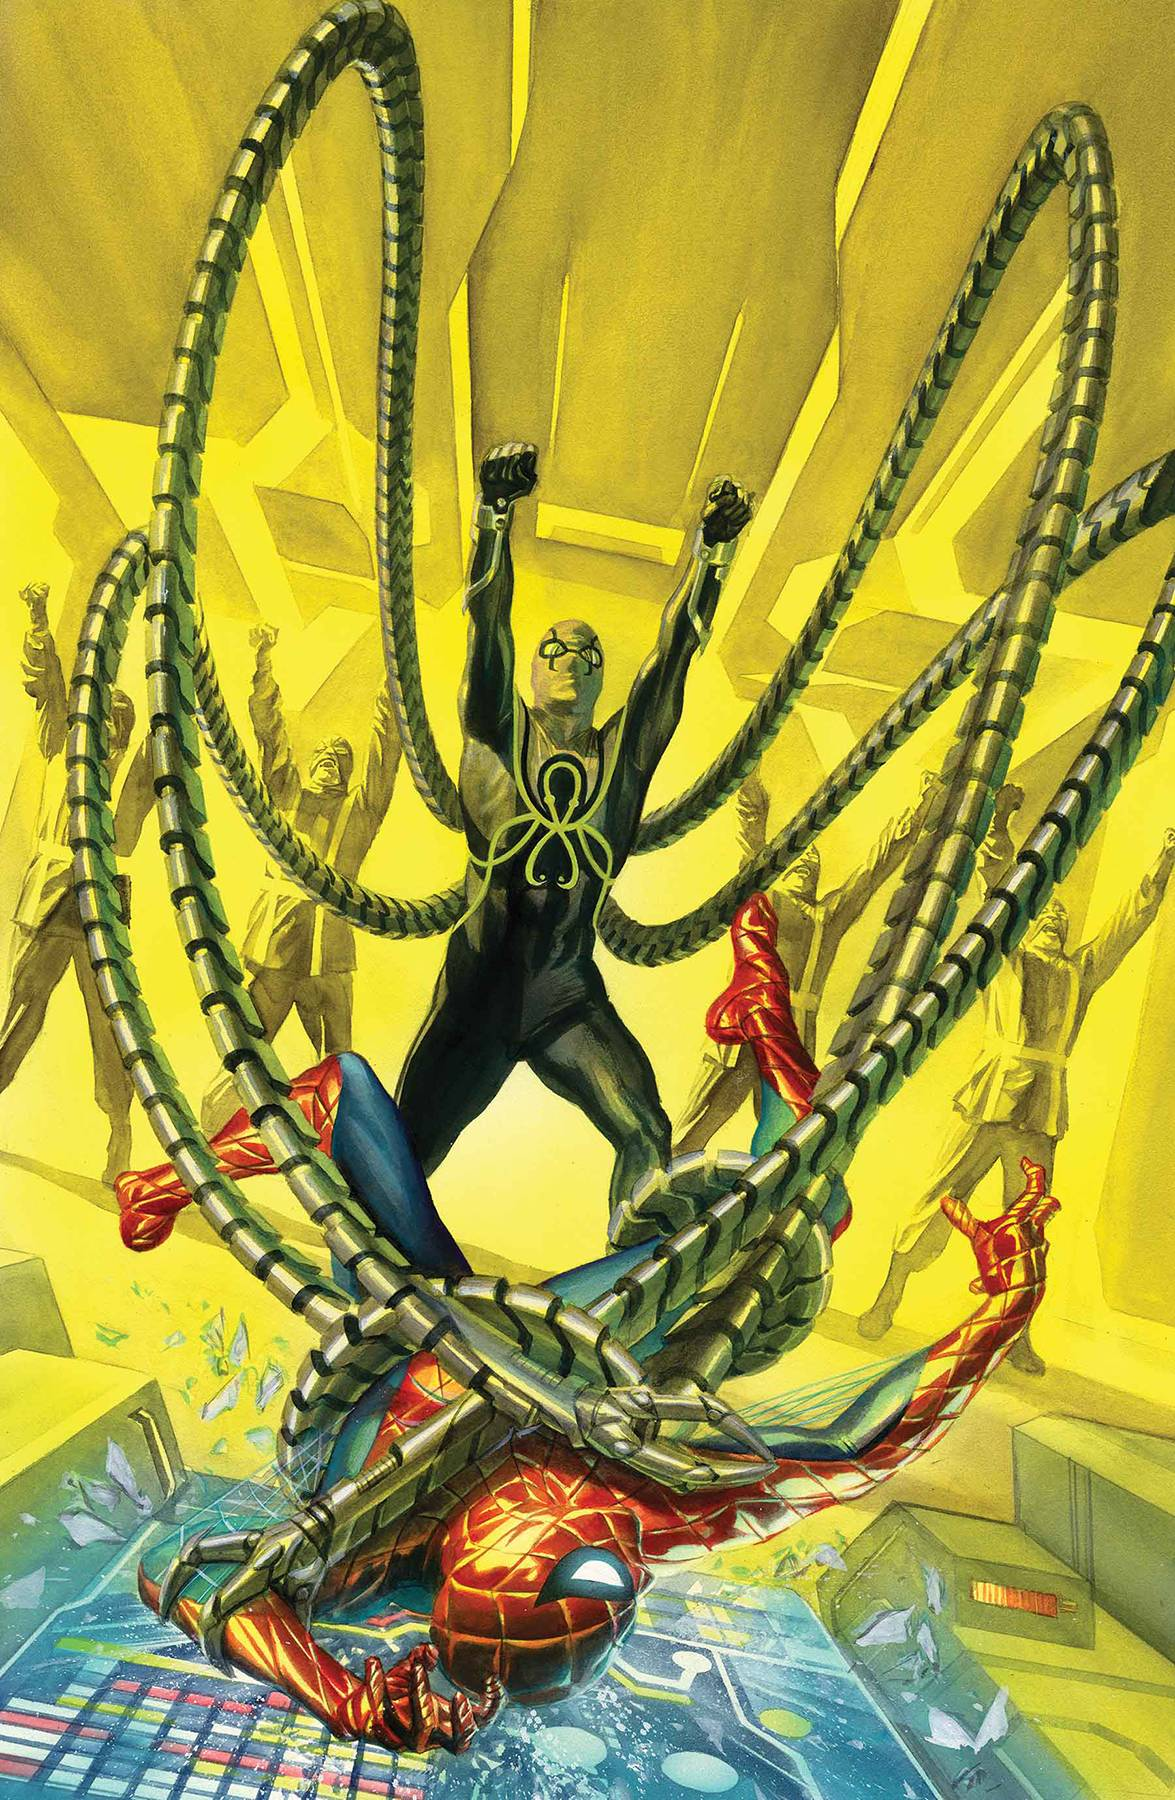 AMAZING SPIDER-MAN 29 BY ALEX ROSS POSTER.jpg